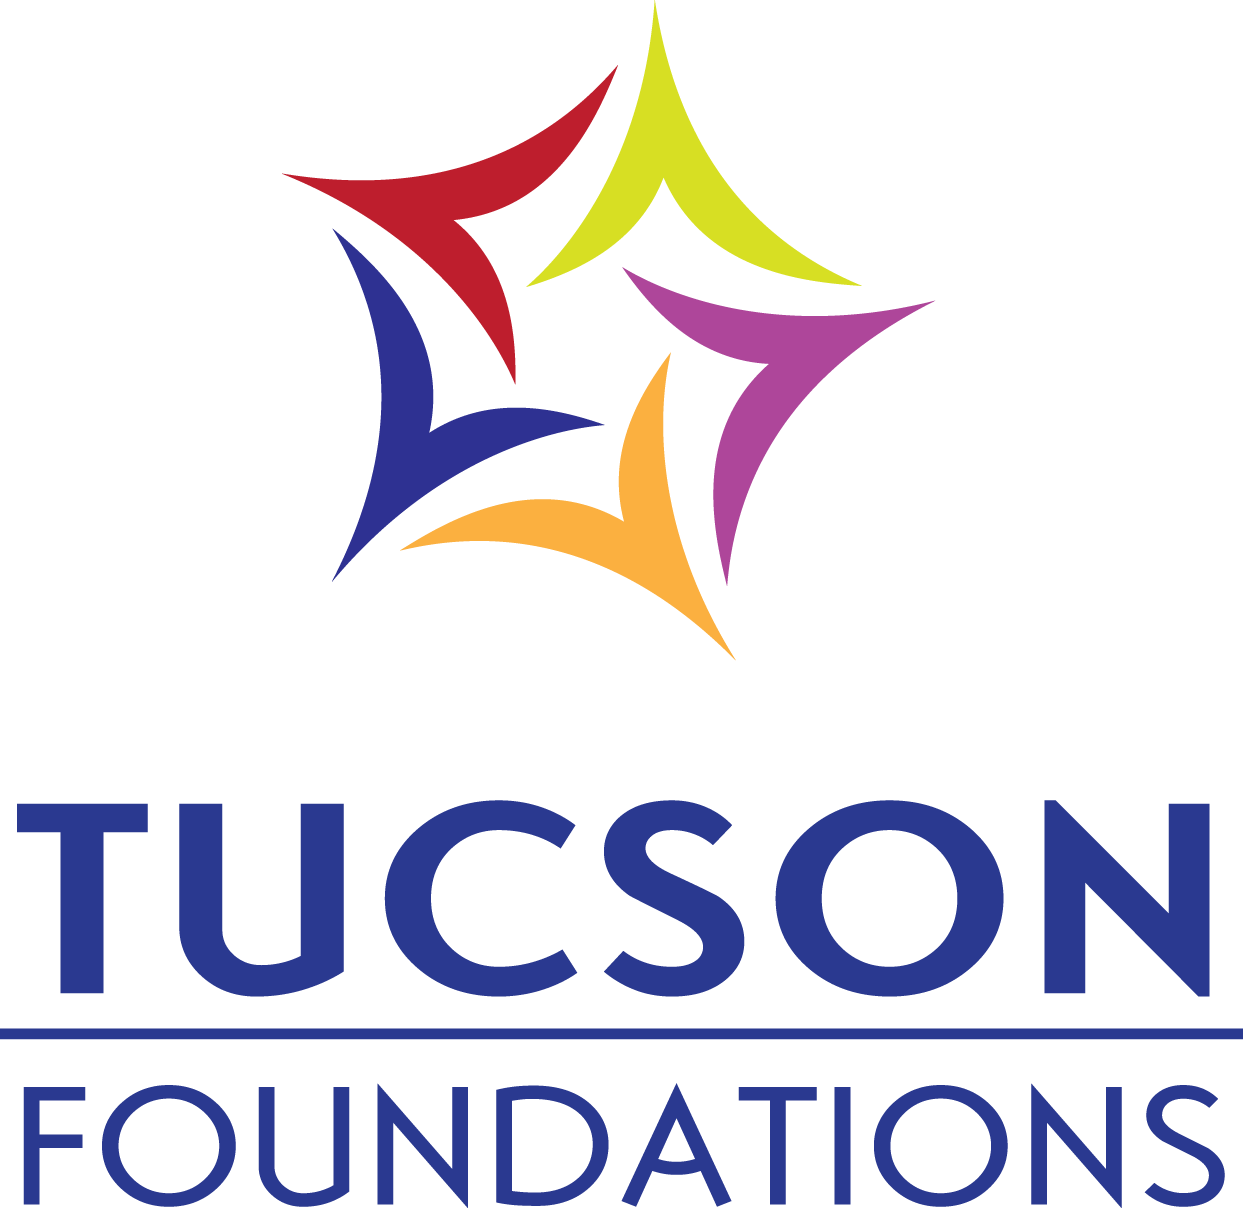 Tucson Foundations